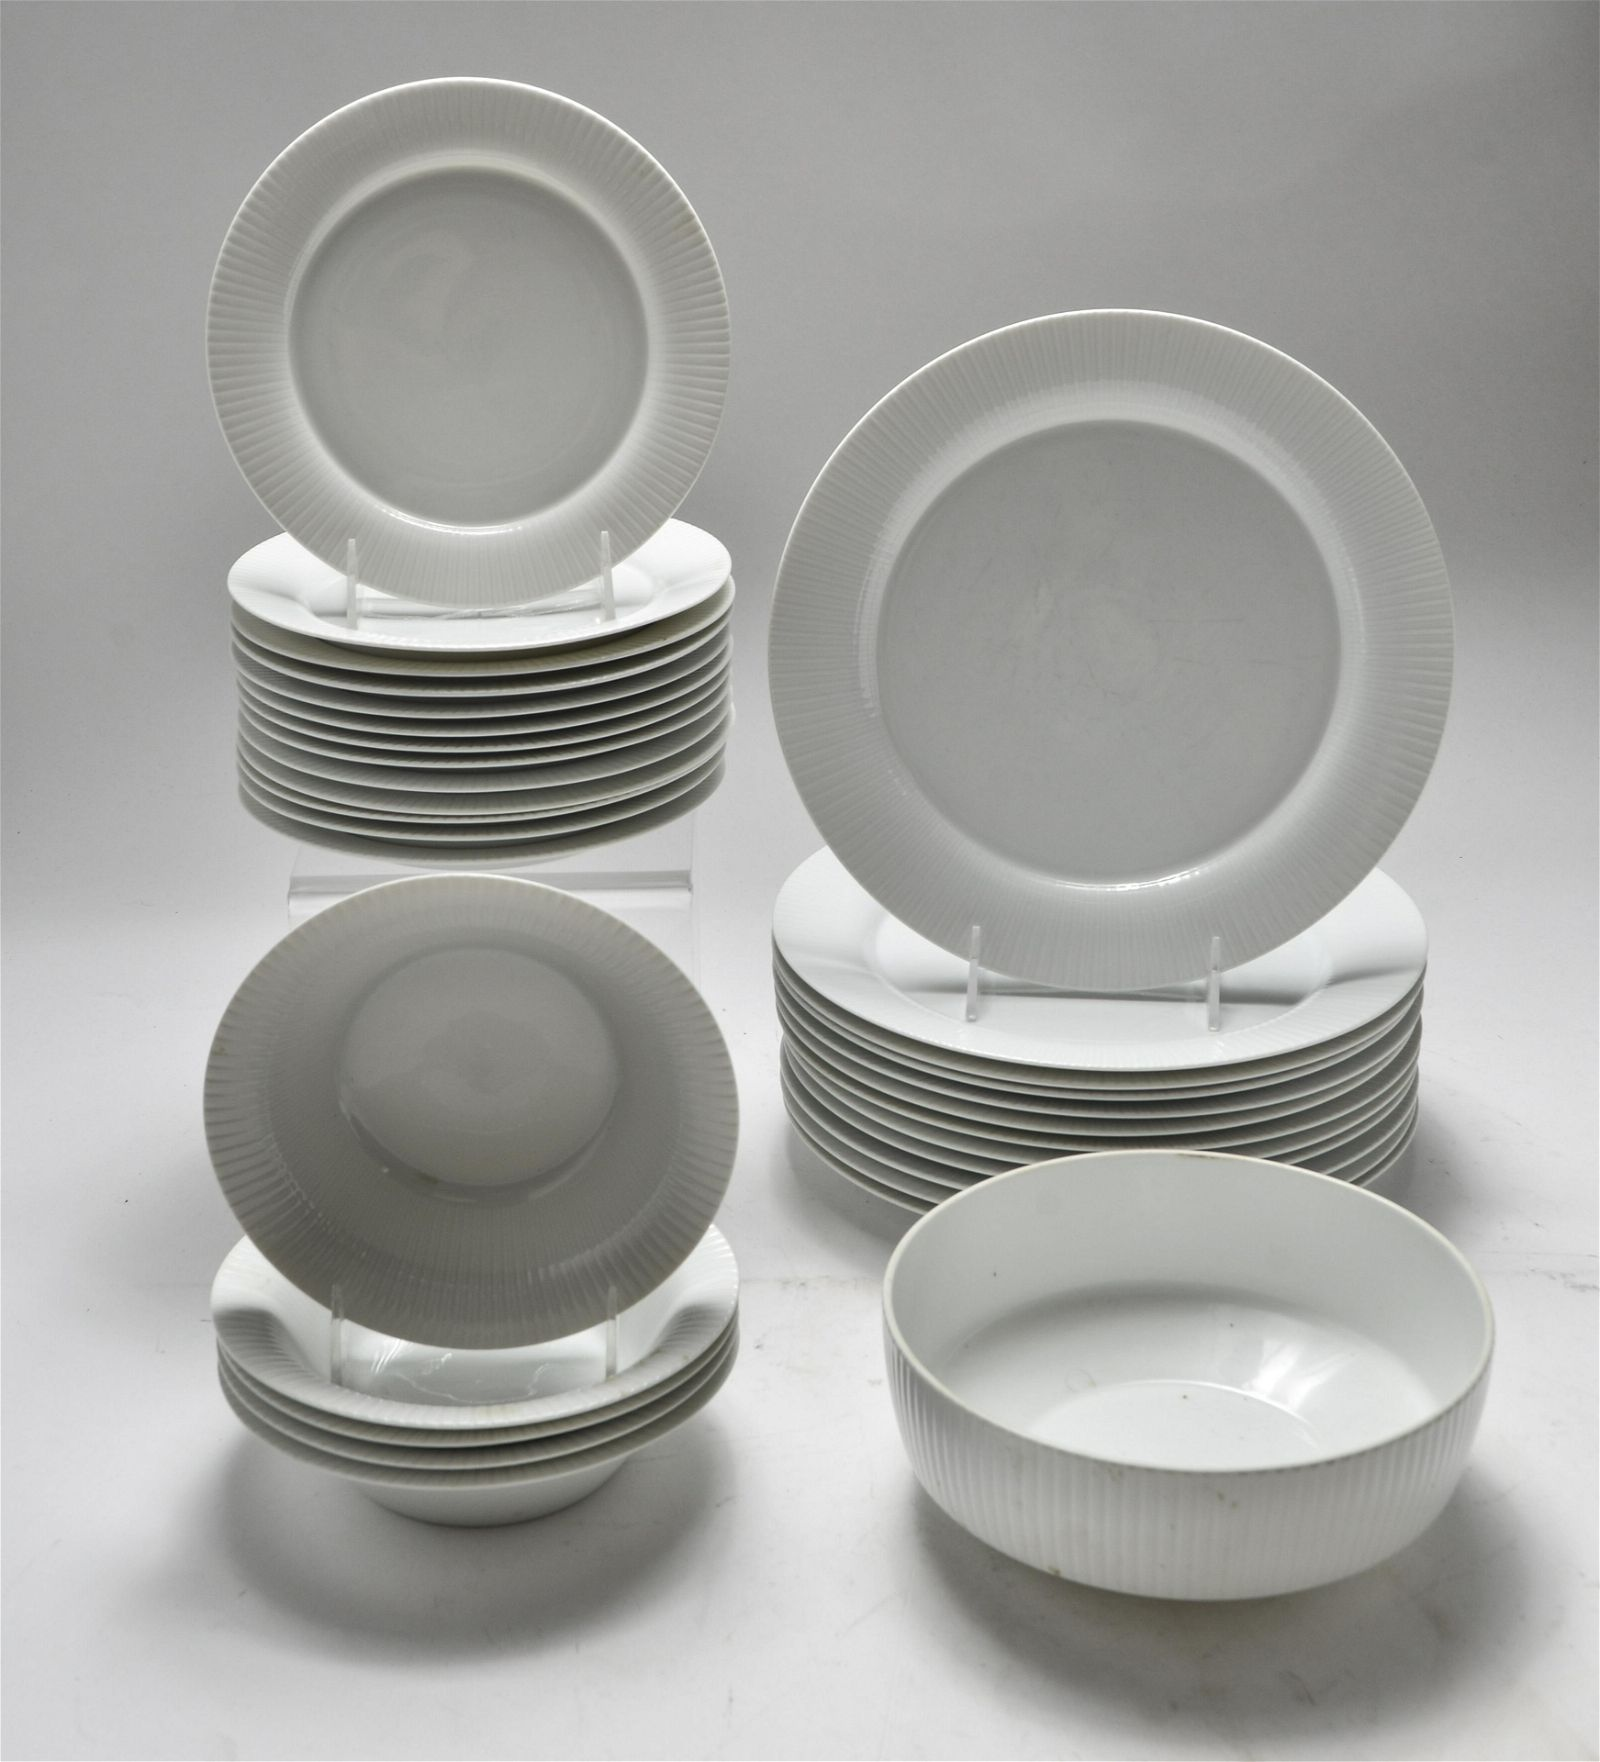 Rosenthal Germany Porcelain Dishes Group of 31